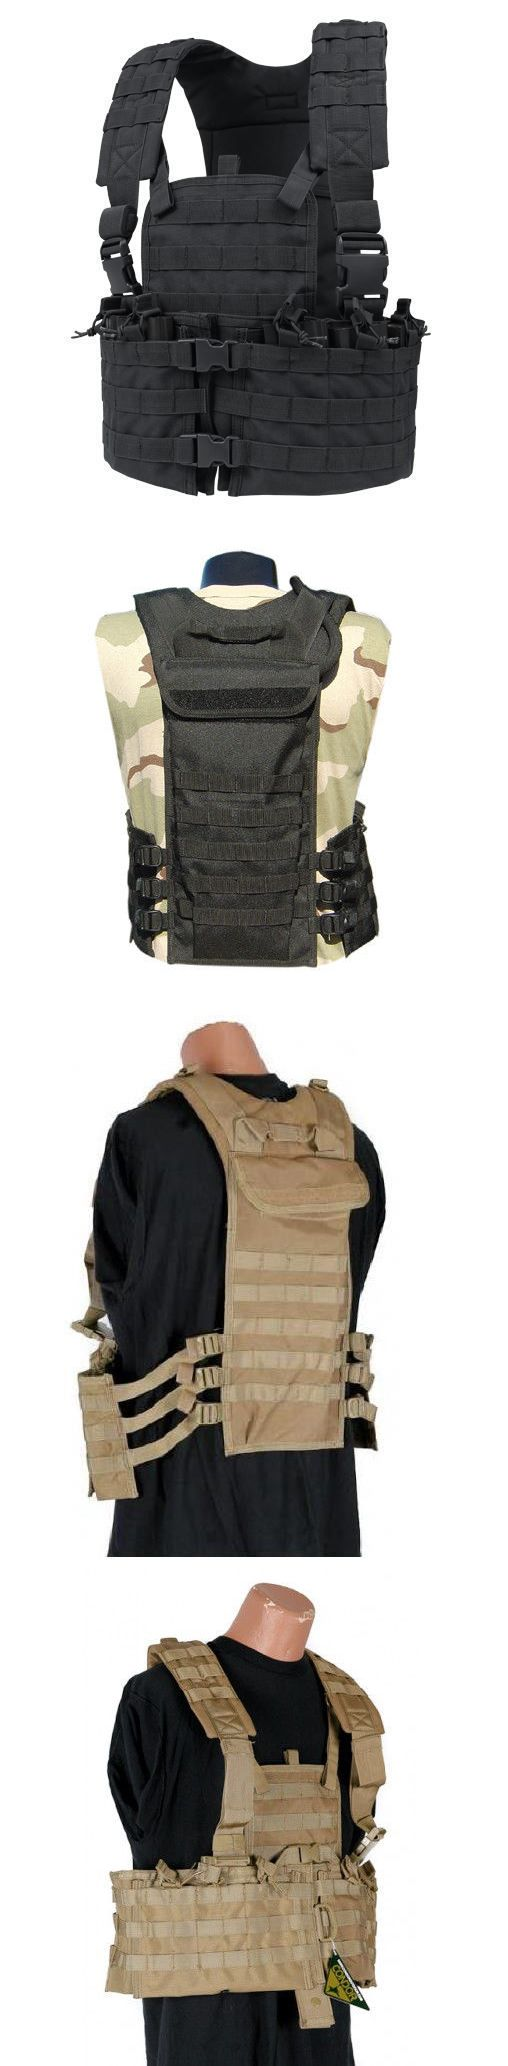 Chest Rigs and Tactical Vests 177891: Condor Cs-002 Molle Modular Chest Set Tactical Nylon Mag Holder Vest Rig Black BUY IT NOW ONLY: $49.95